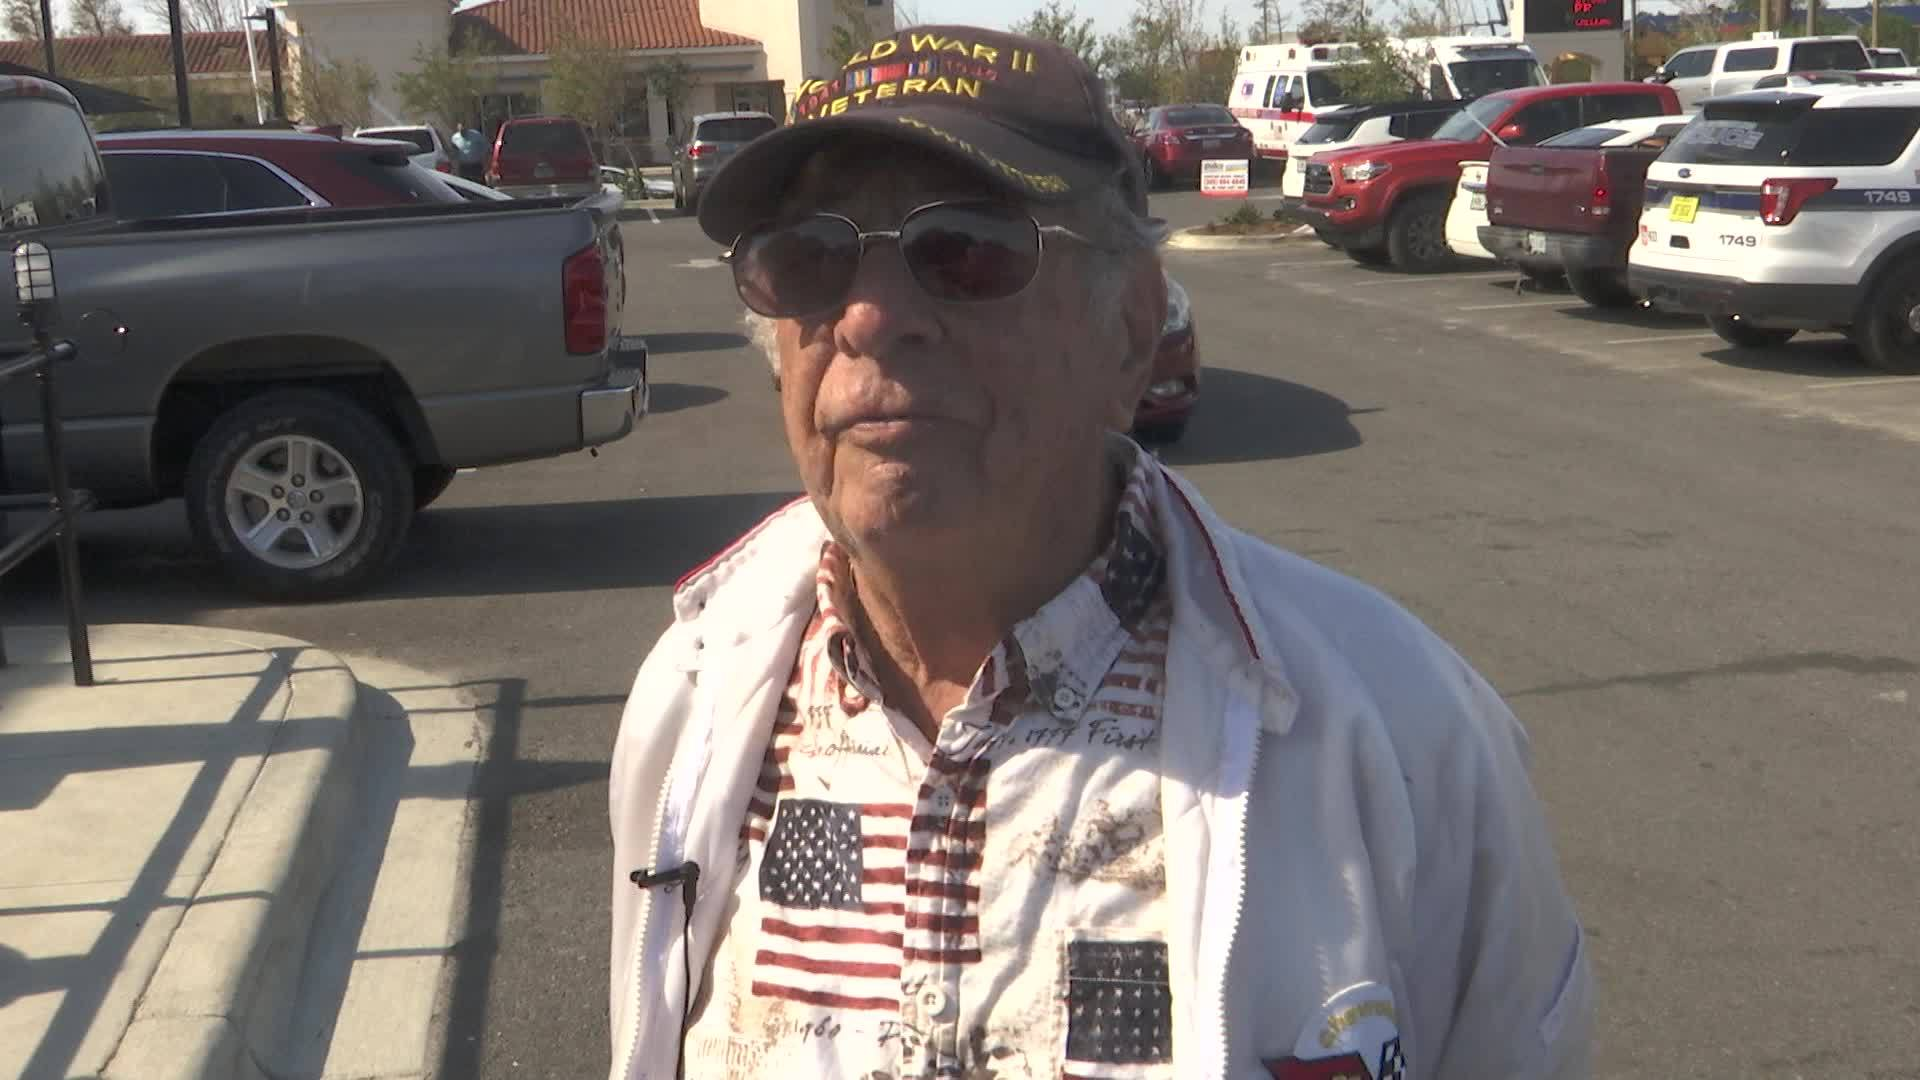 WWII Veteran Speaks About his Traditions on Veteran's Day